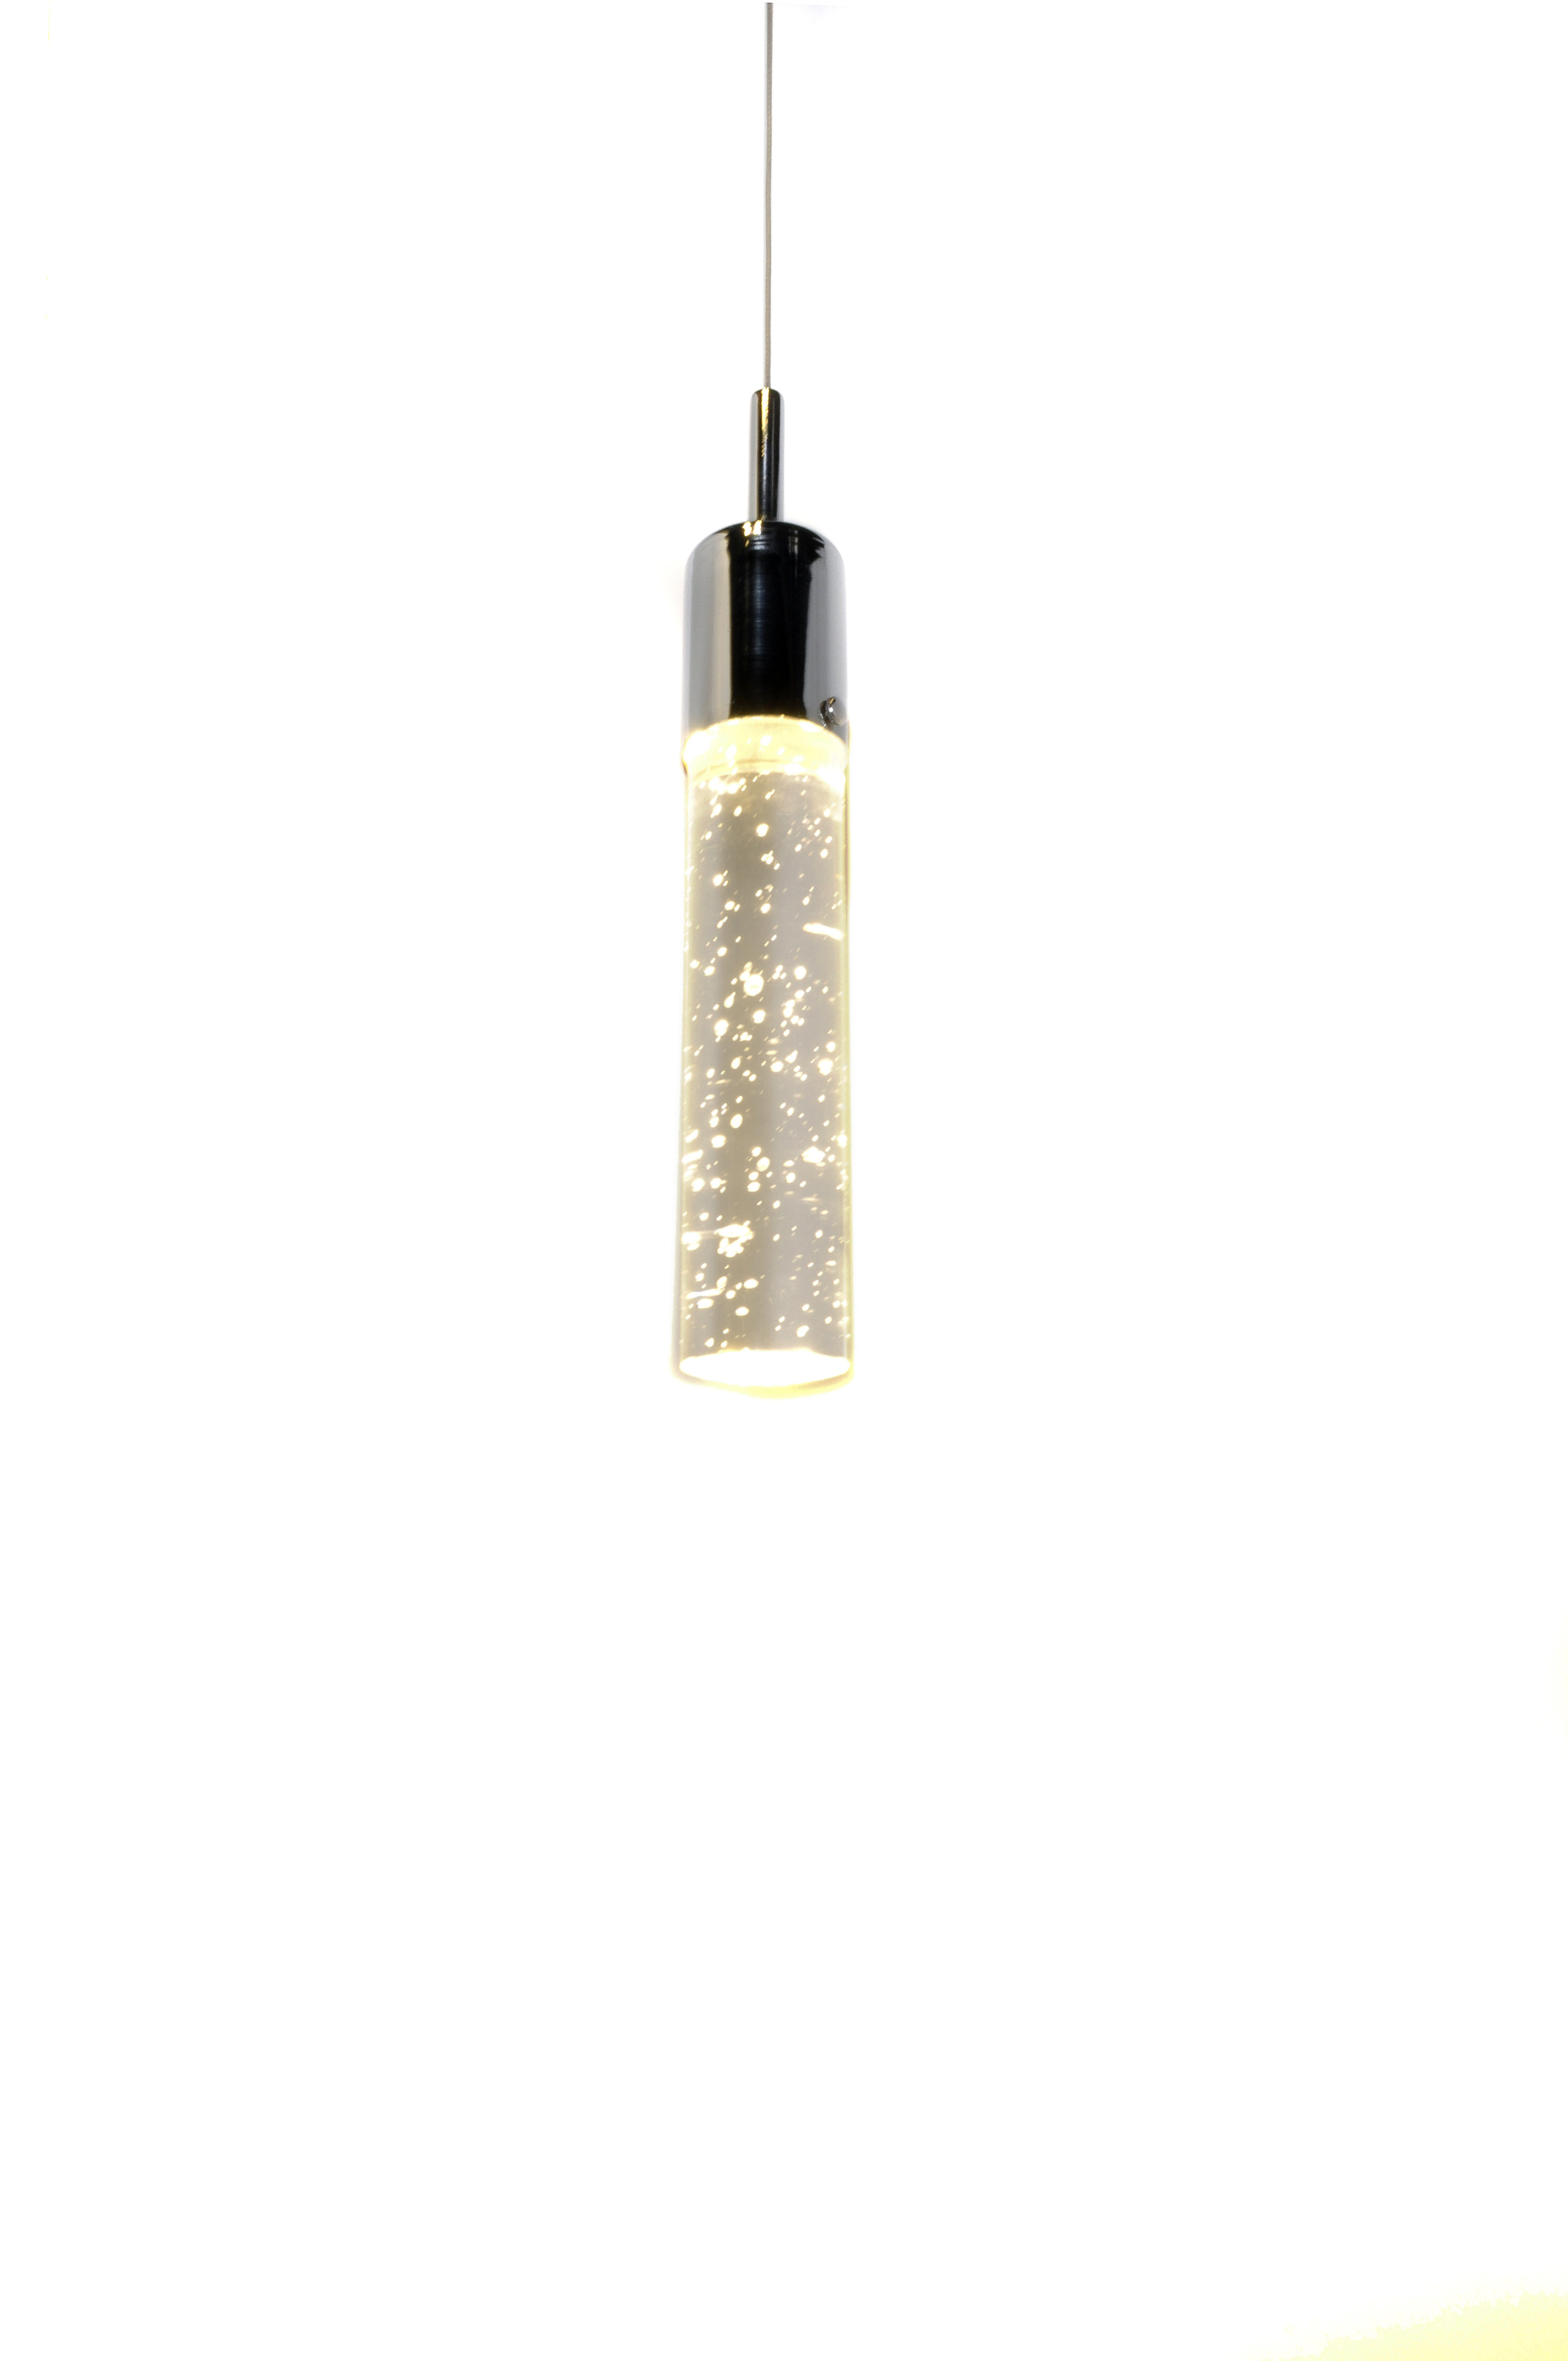 fizz iv 1 light led pendant mini pendant maxim lighting fizz iv · fizz iv 1 light led pendant